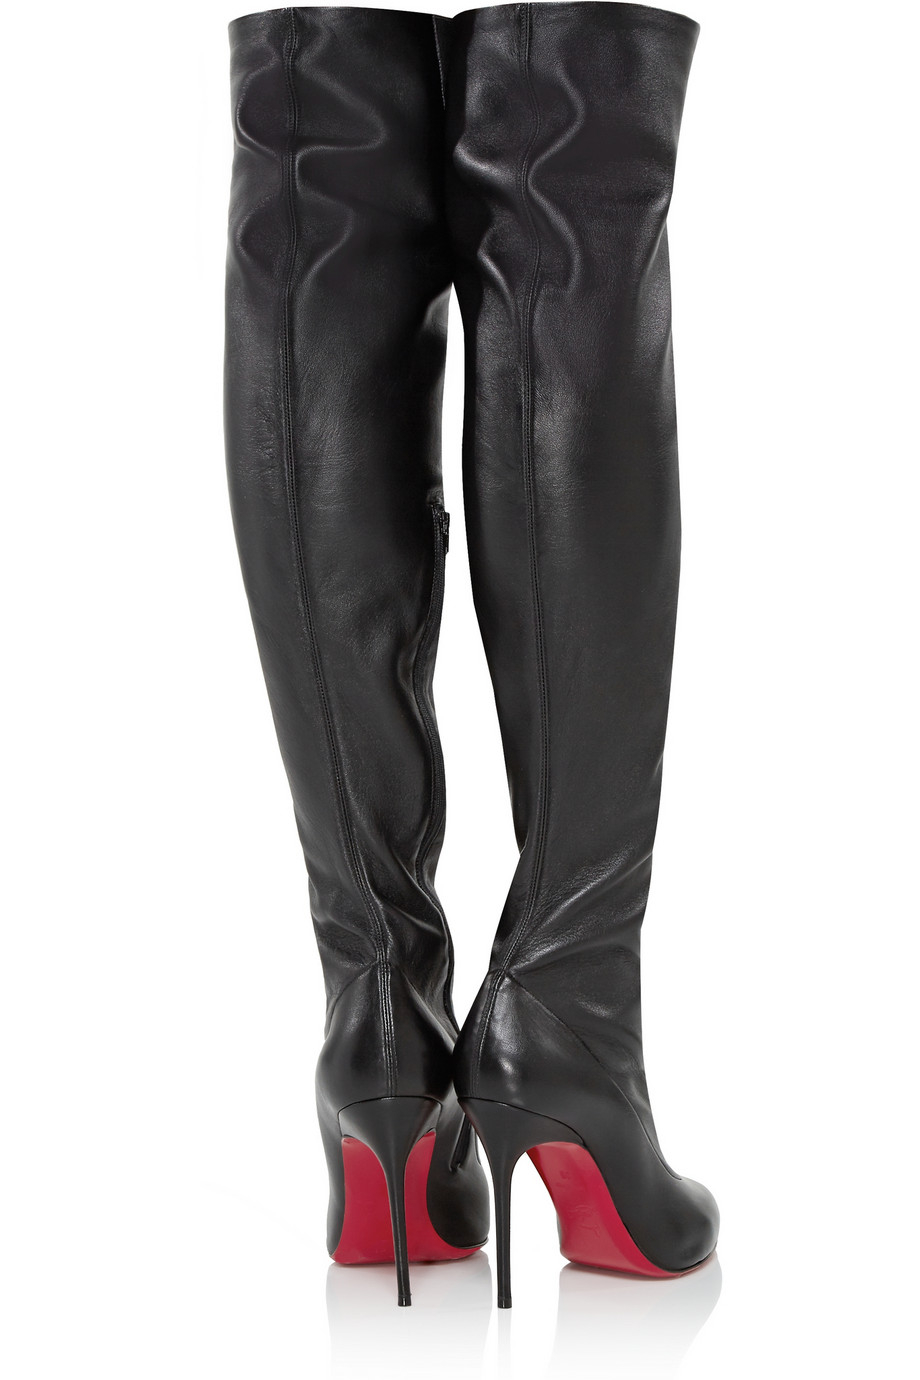 Black Leather Over The Knee Boots Coltford Boots